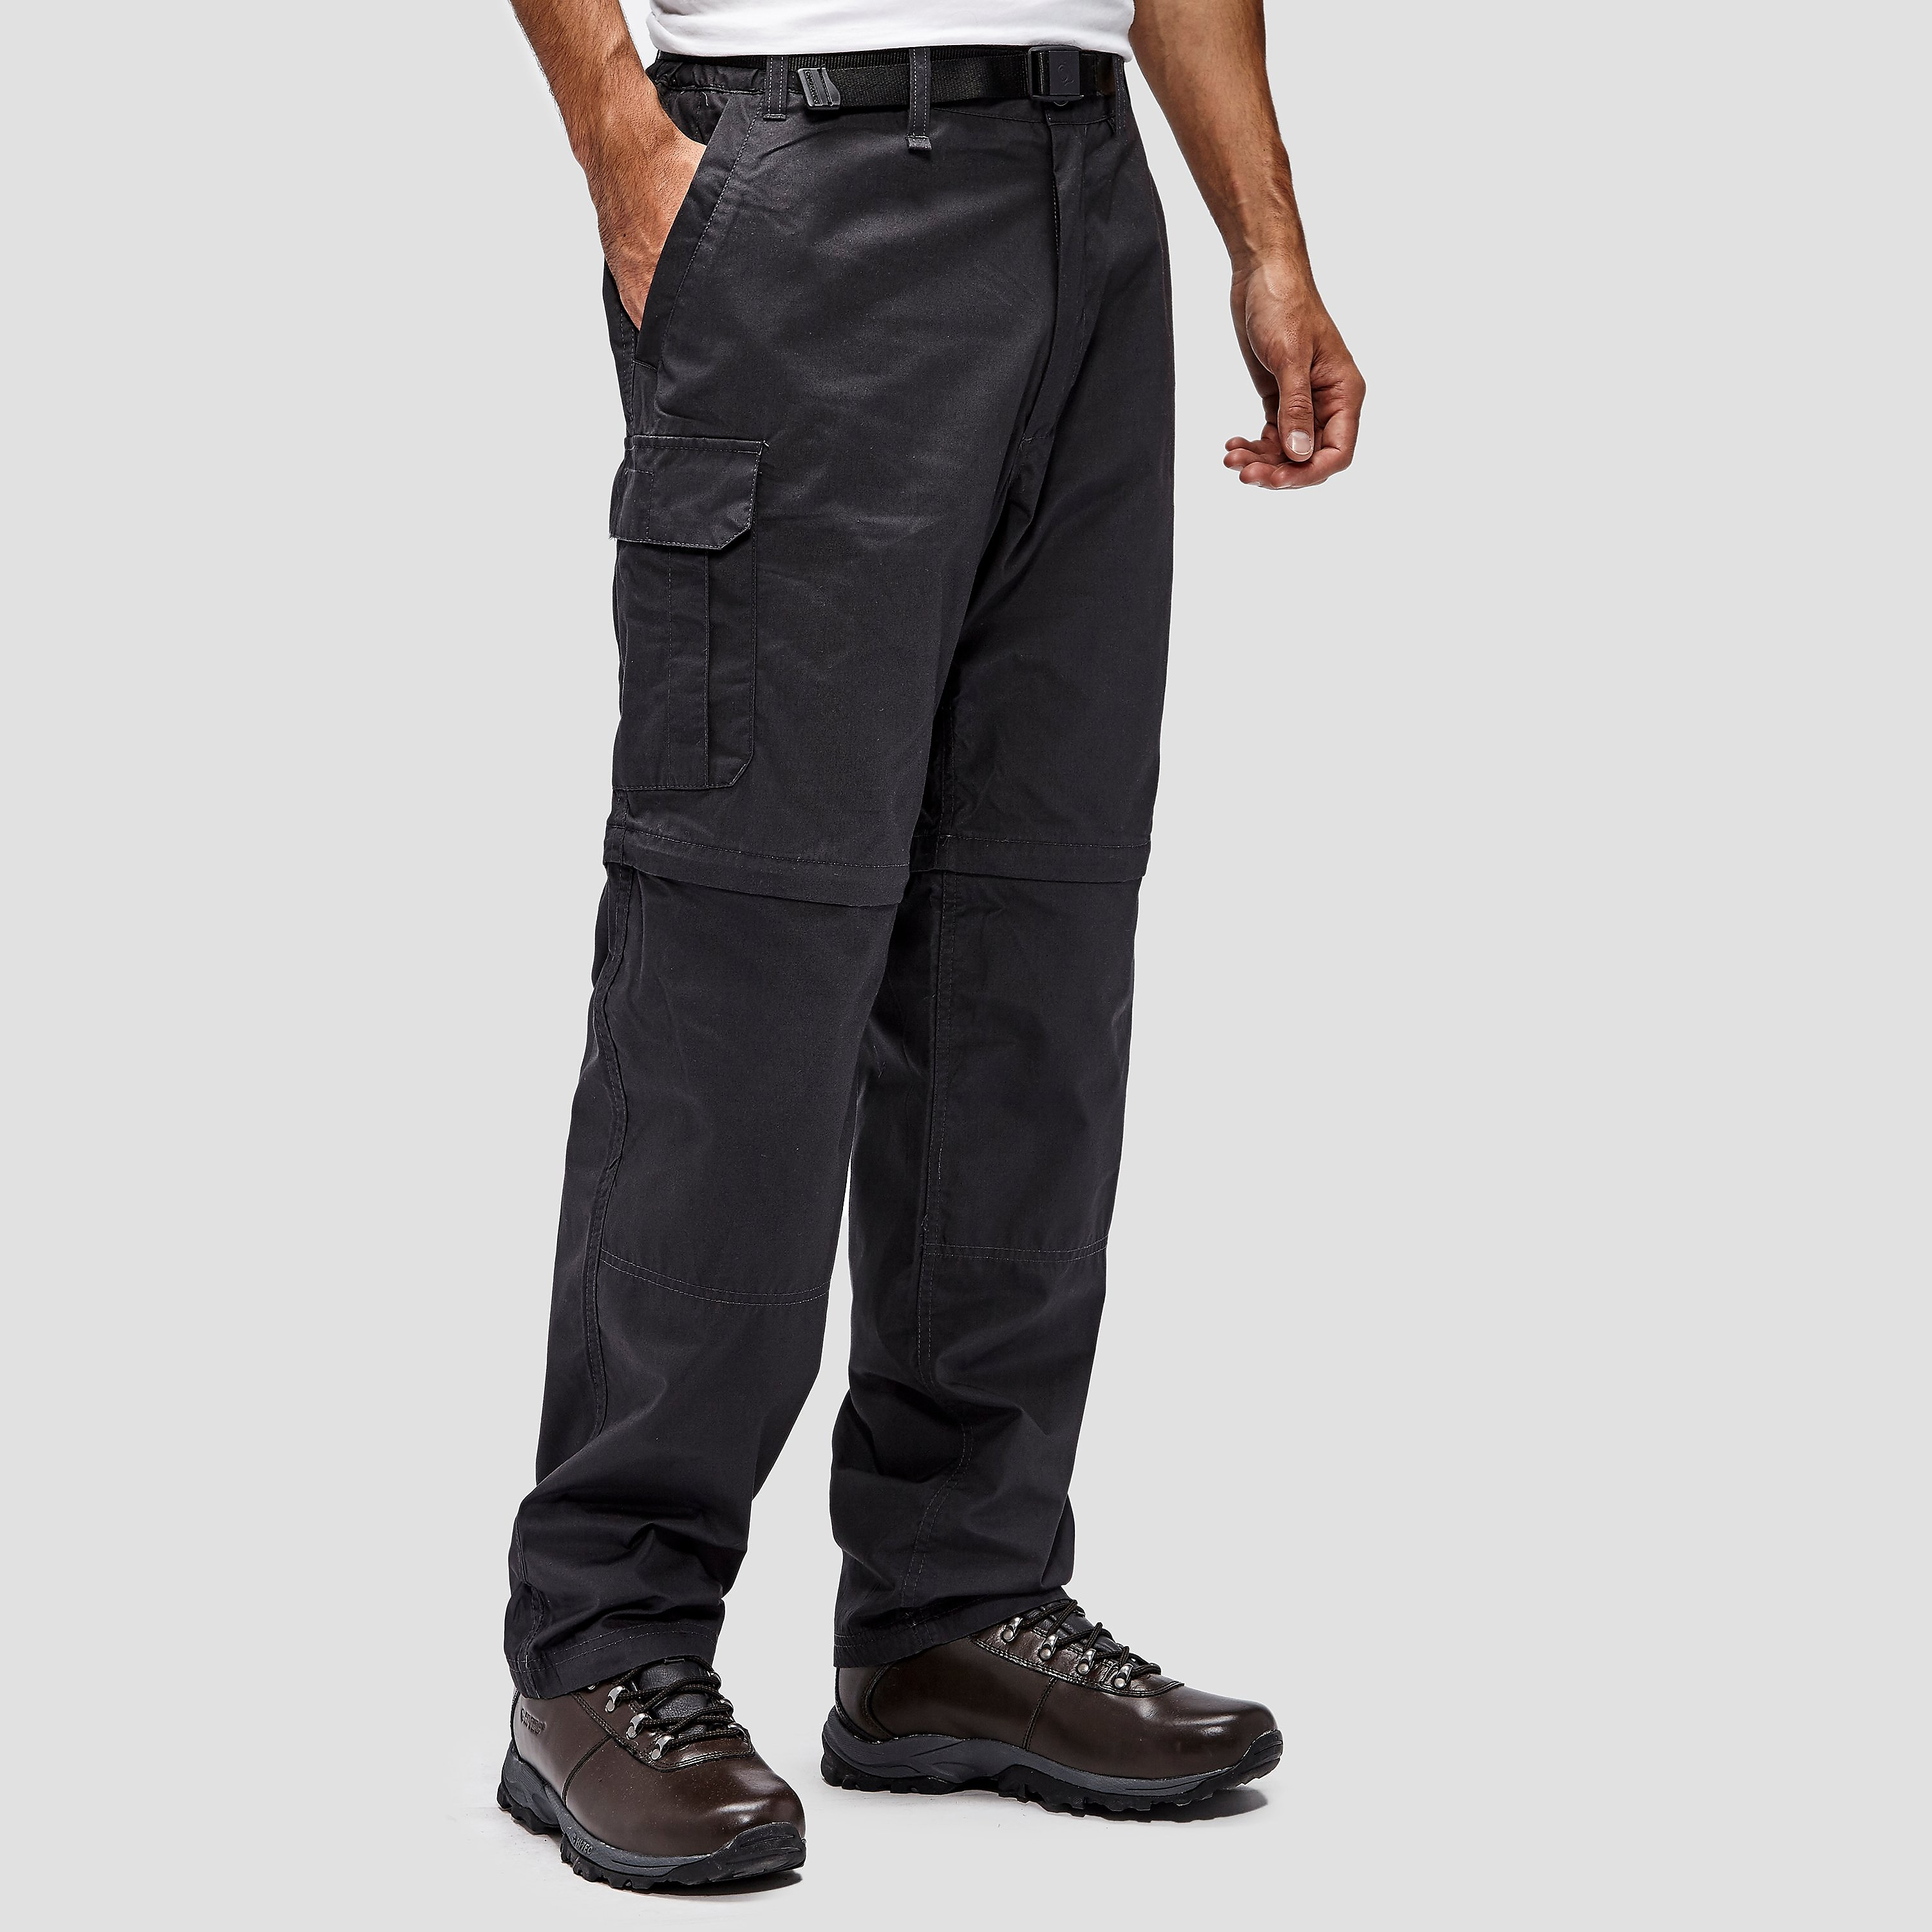 CRAGHOPPERS Men's Kiwi Convertible Trousers